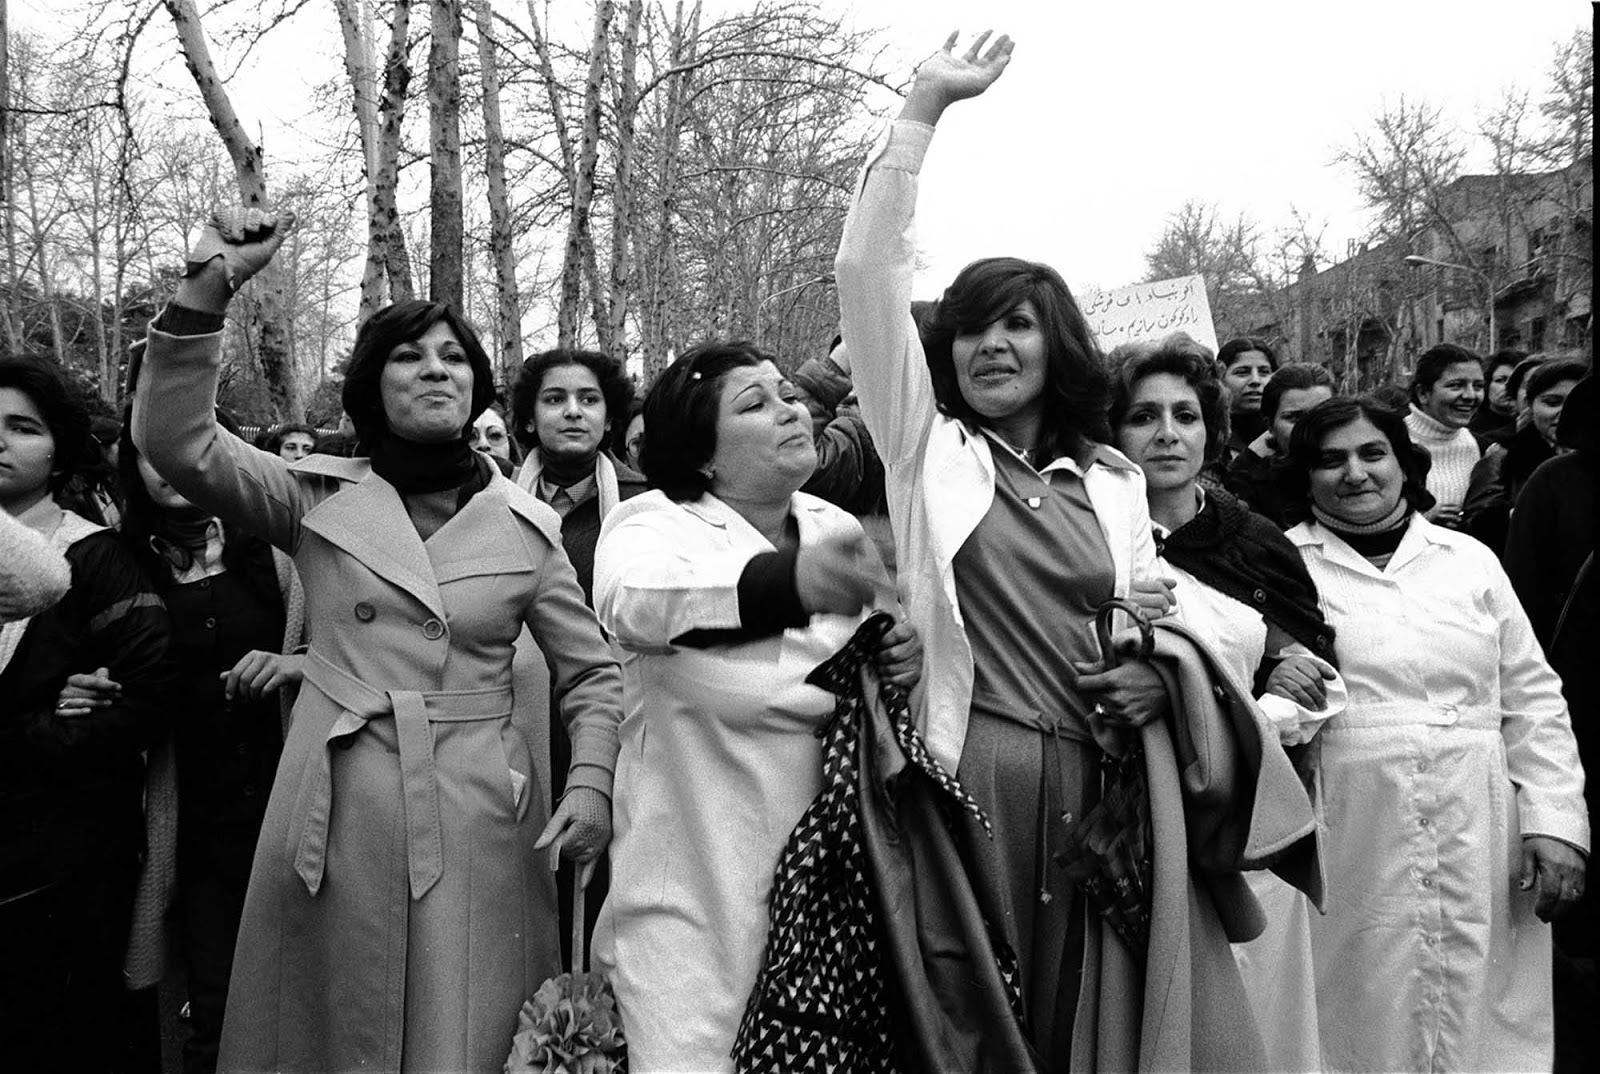 the iranian revolution of 1979 The end of a 2,500-year-old monarchy in that country, announced on the 11th february 1979 after eighteen months of mass demonstrations, huge industrial actions and general strikes which deeply shook the iranian society as a whole, brought about the victory of the islamic revolution.